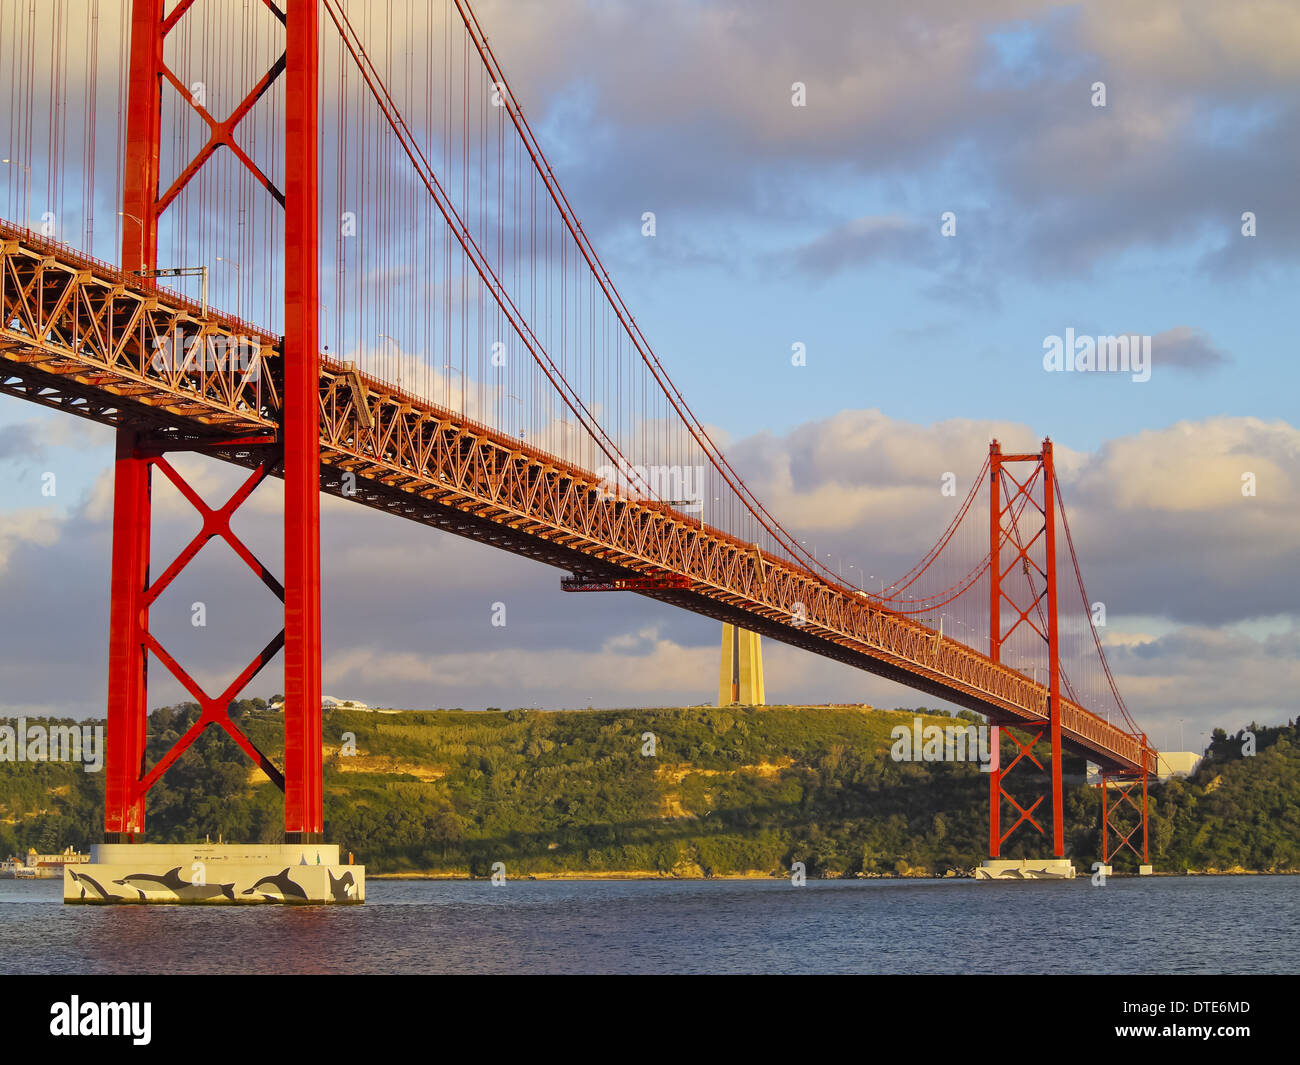 25 de Abril Bridge over the Tagus River in Lisbon, Portugal Stock Photo